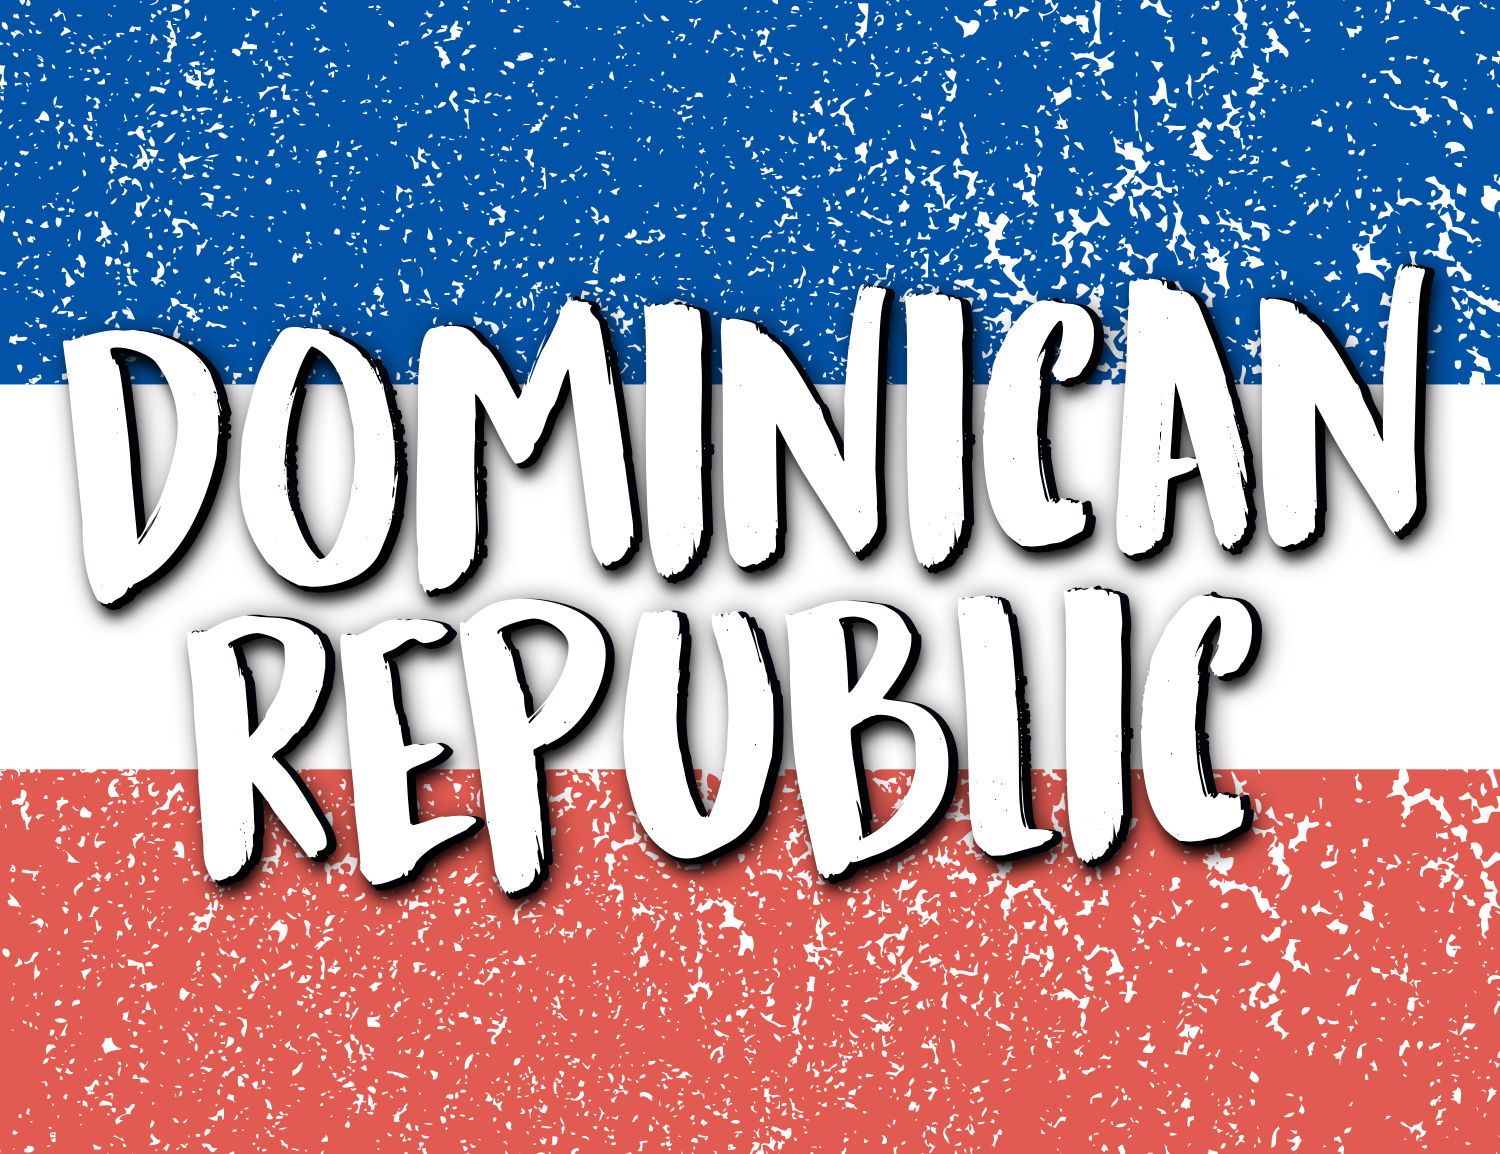 dominican_republic_button.jpg